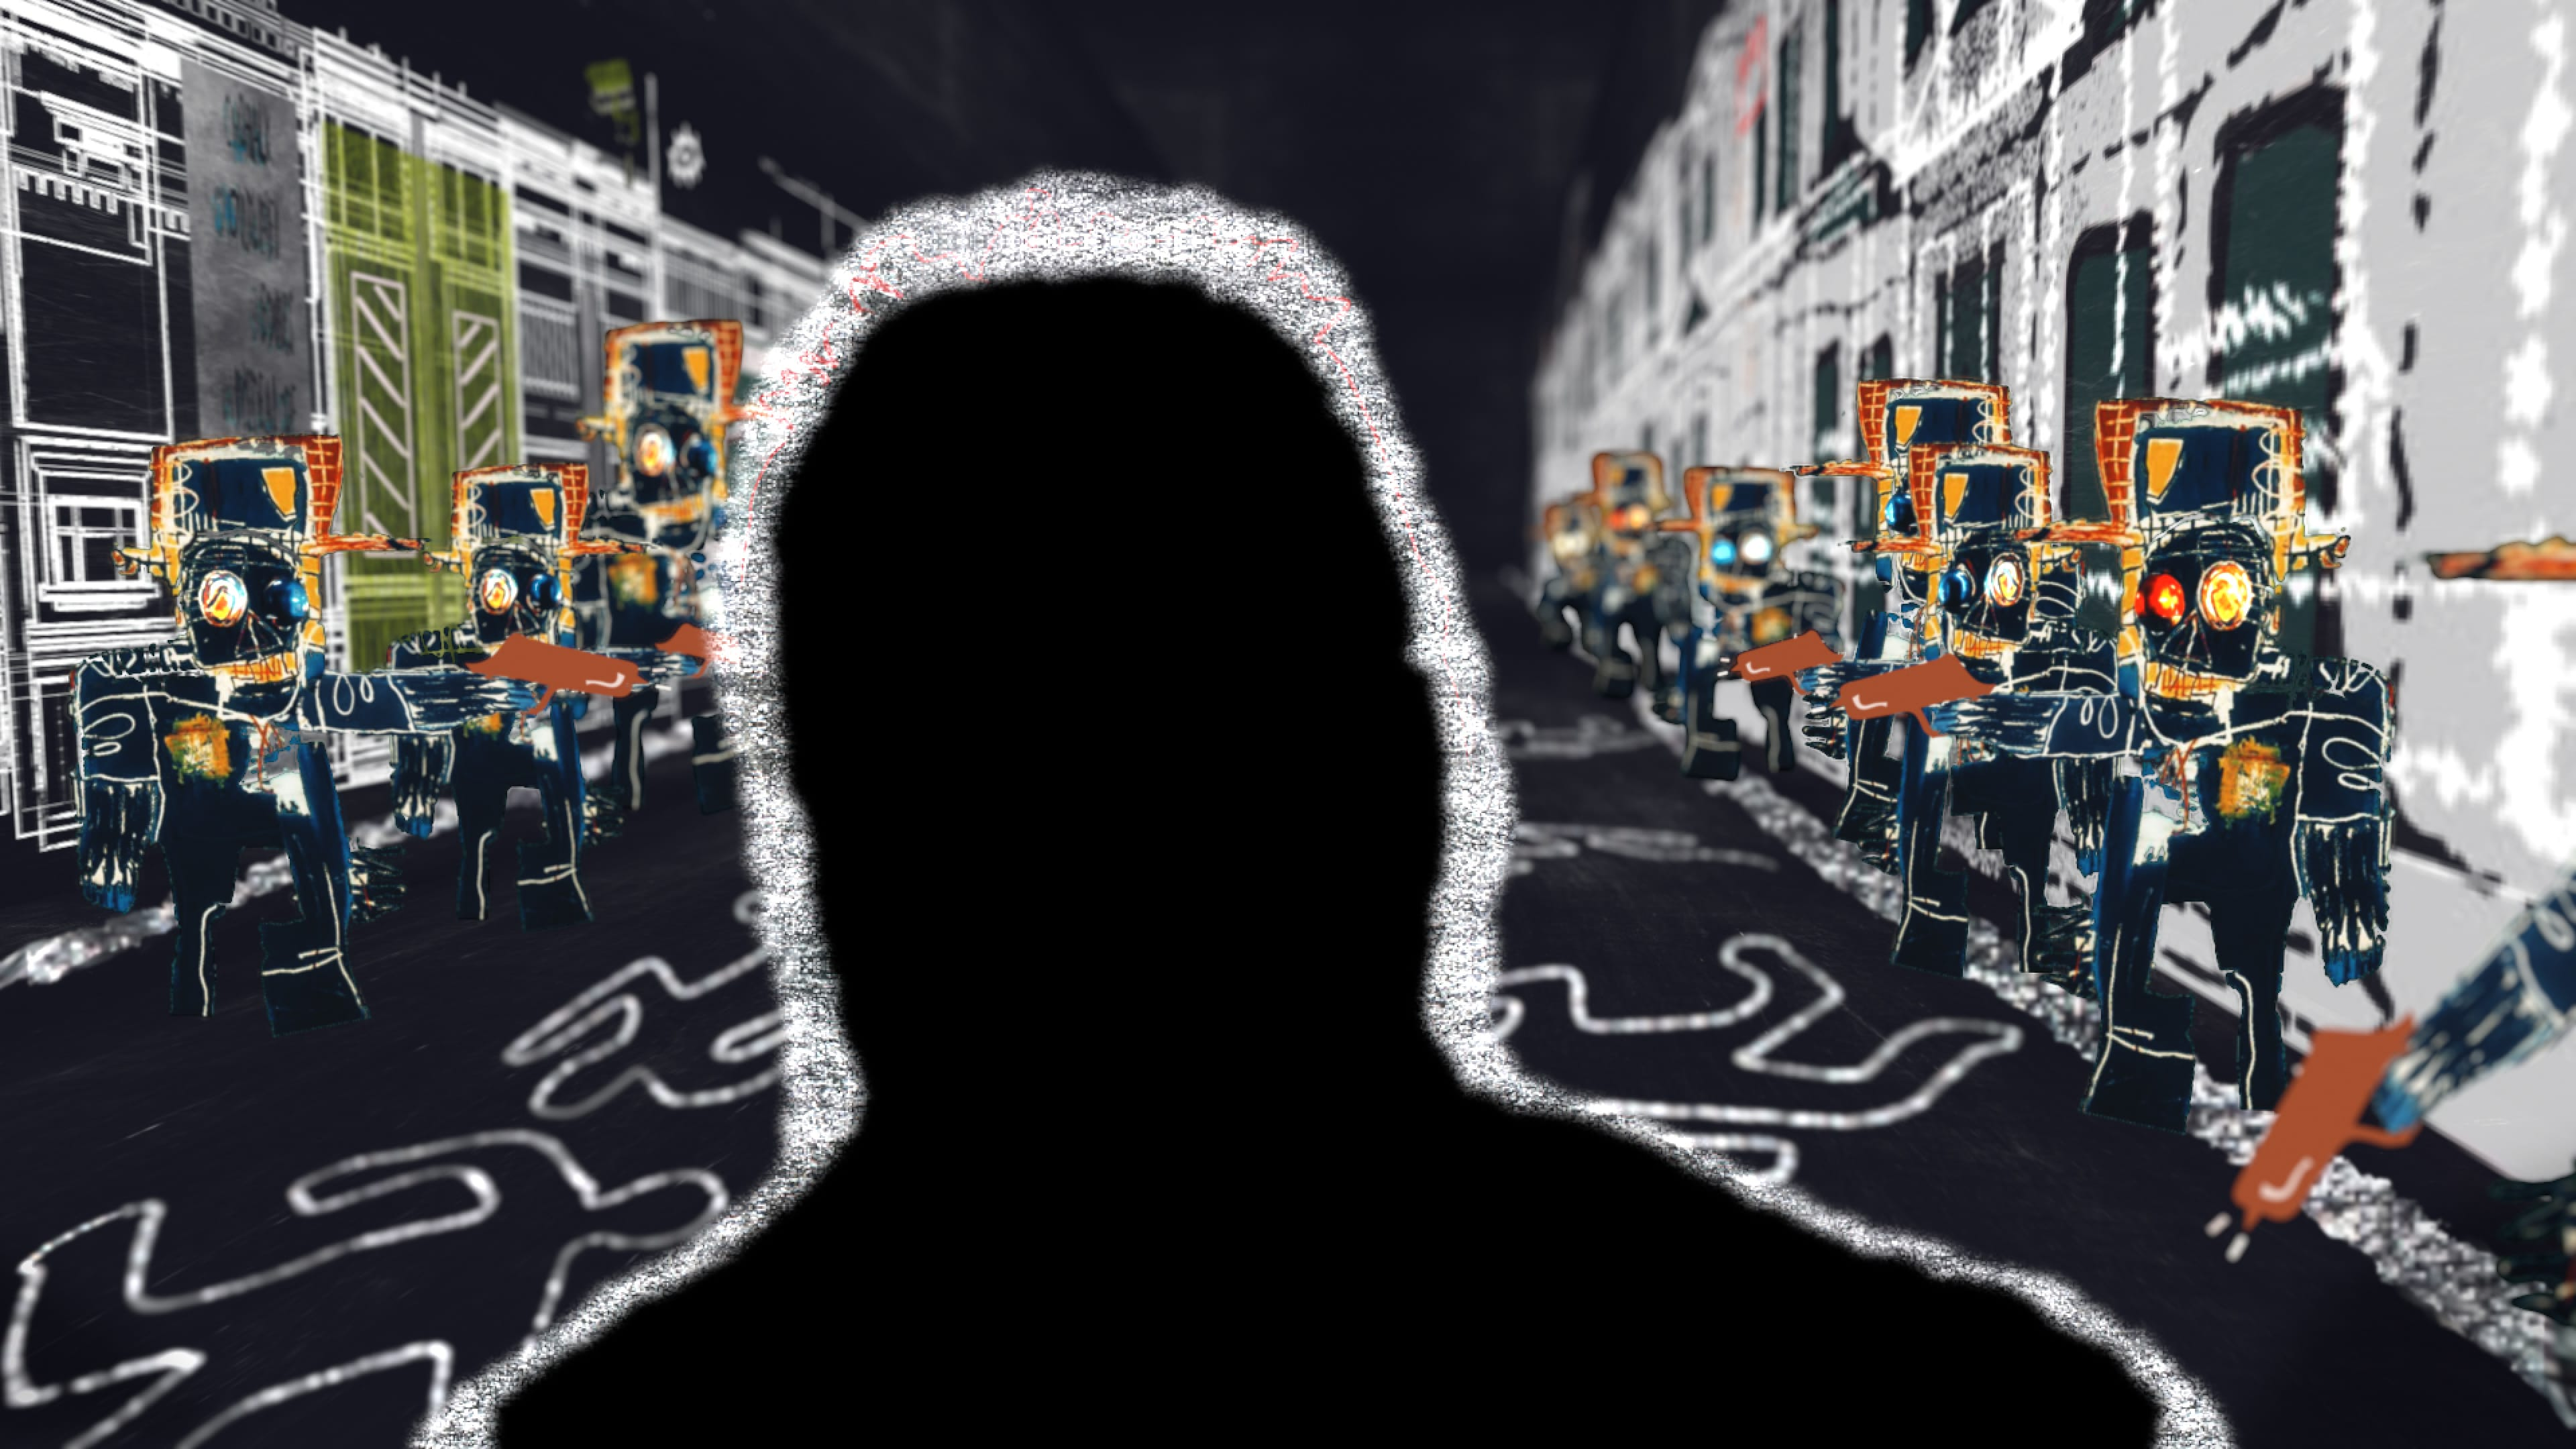 An illustration by Atomic Arts shows a street filled with chalk outlines of bodies. One of these outlines walks upright through the scene.